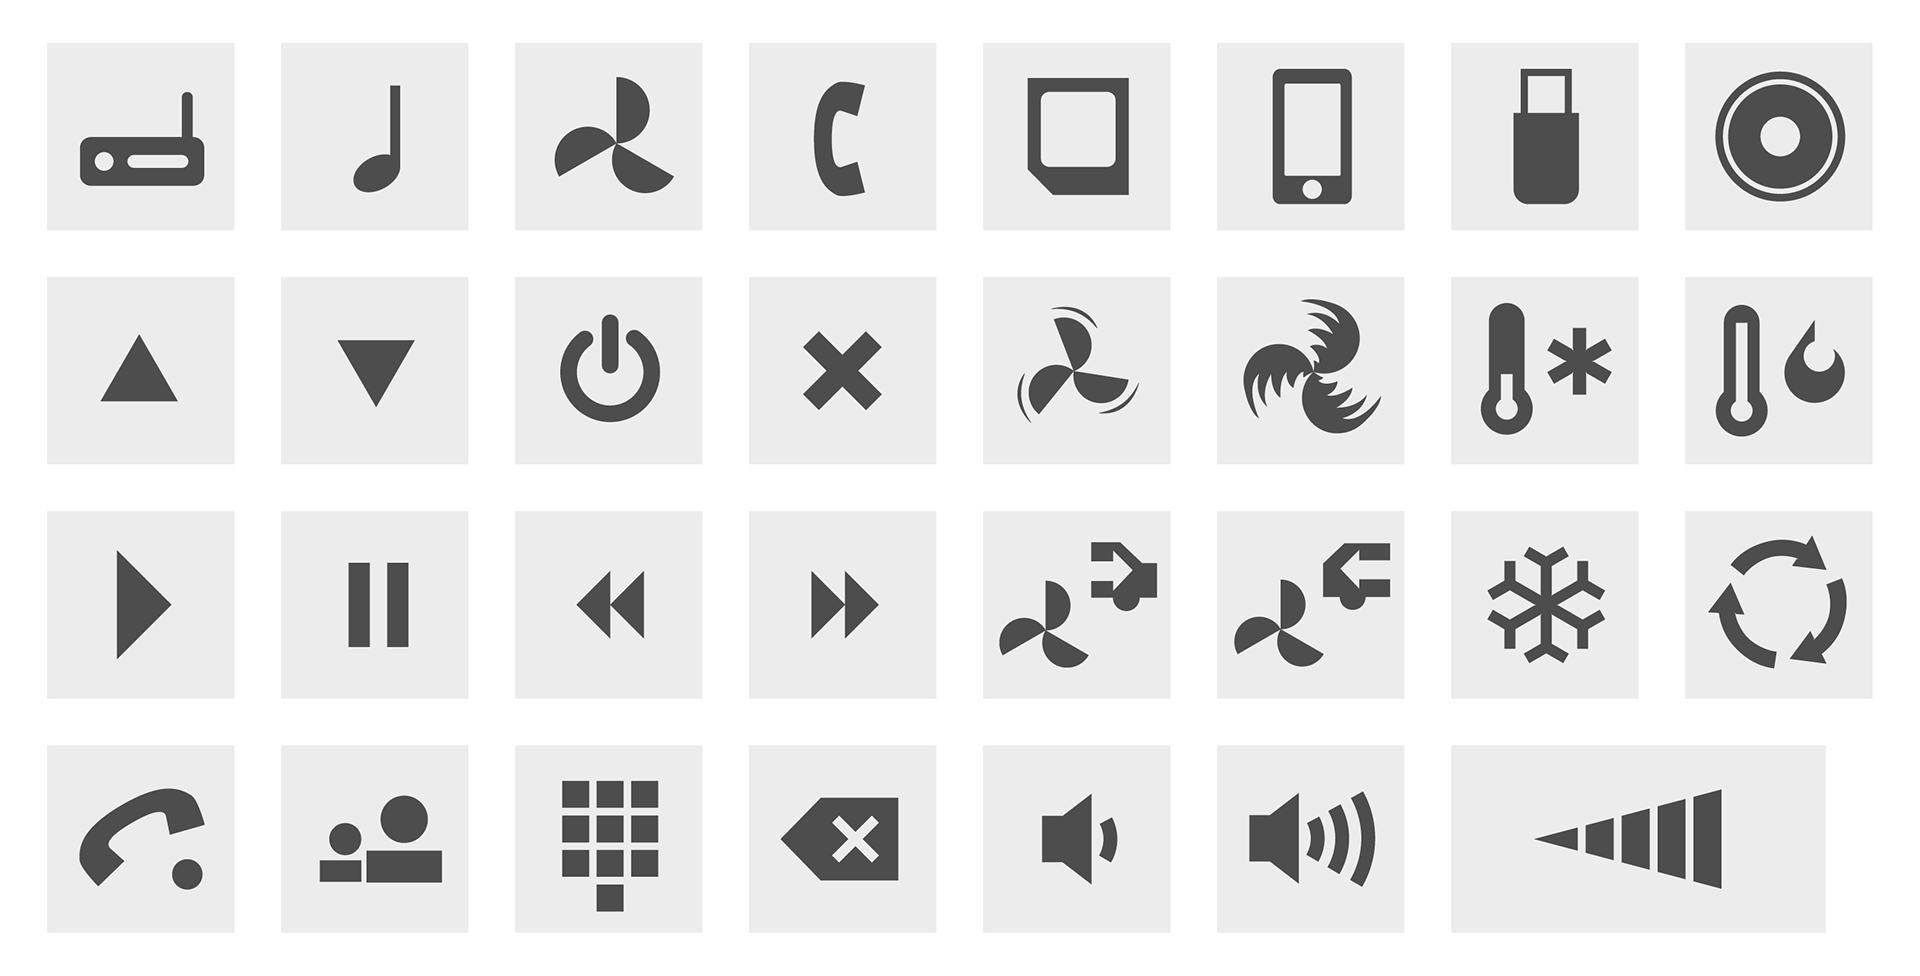 The finished icons, which were used for the Google screen design.